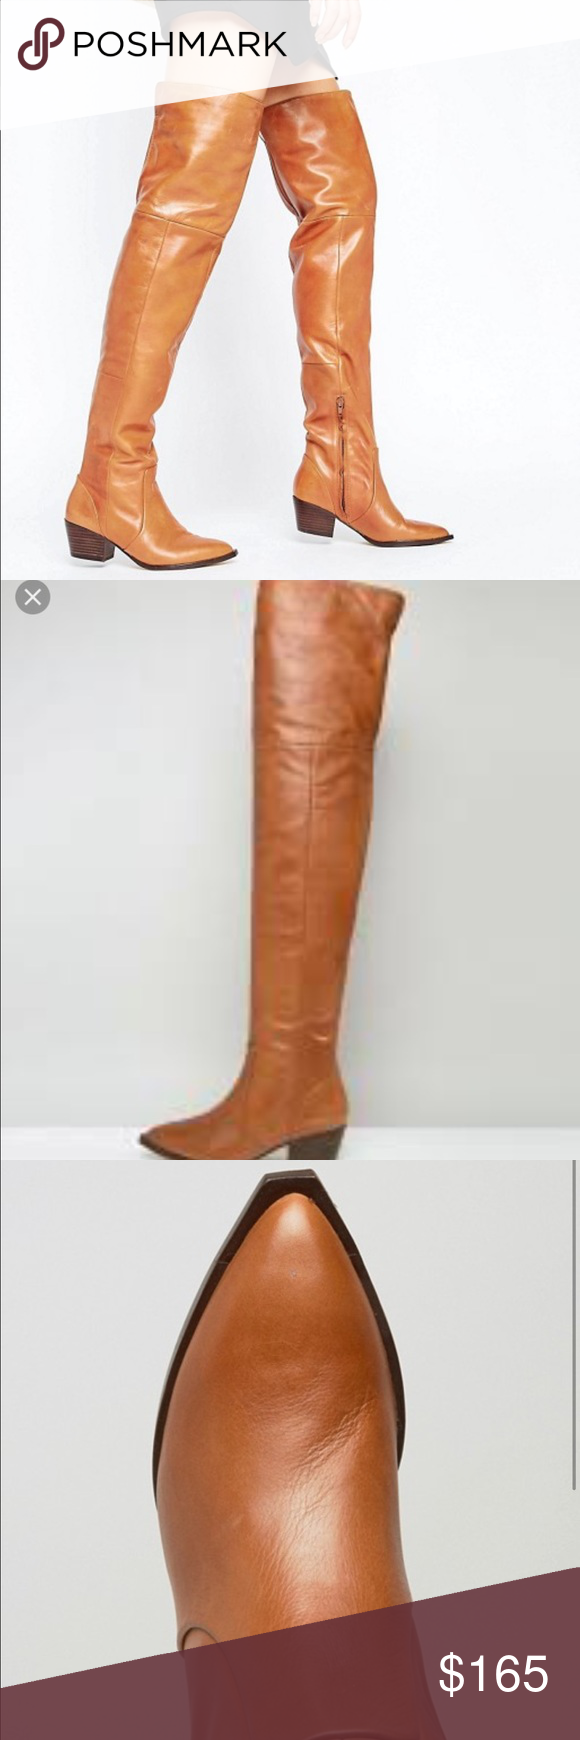 37fa352be15 NEW ALDO Deedee Cognac Leather Over The Knee Boots Thigh s the limit in  sky-high leather OTK boots. Reintroduced with a western heel